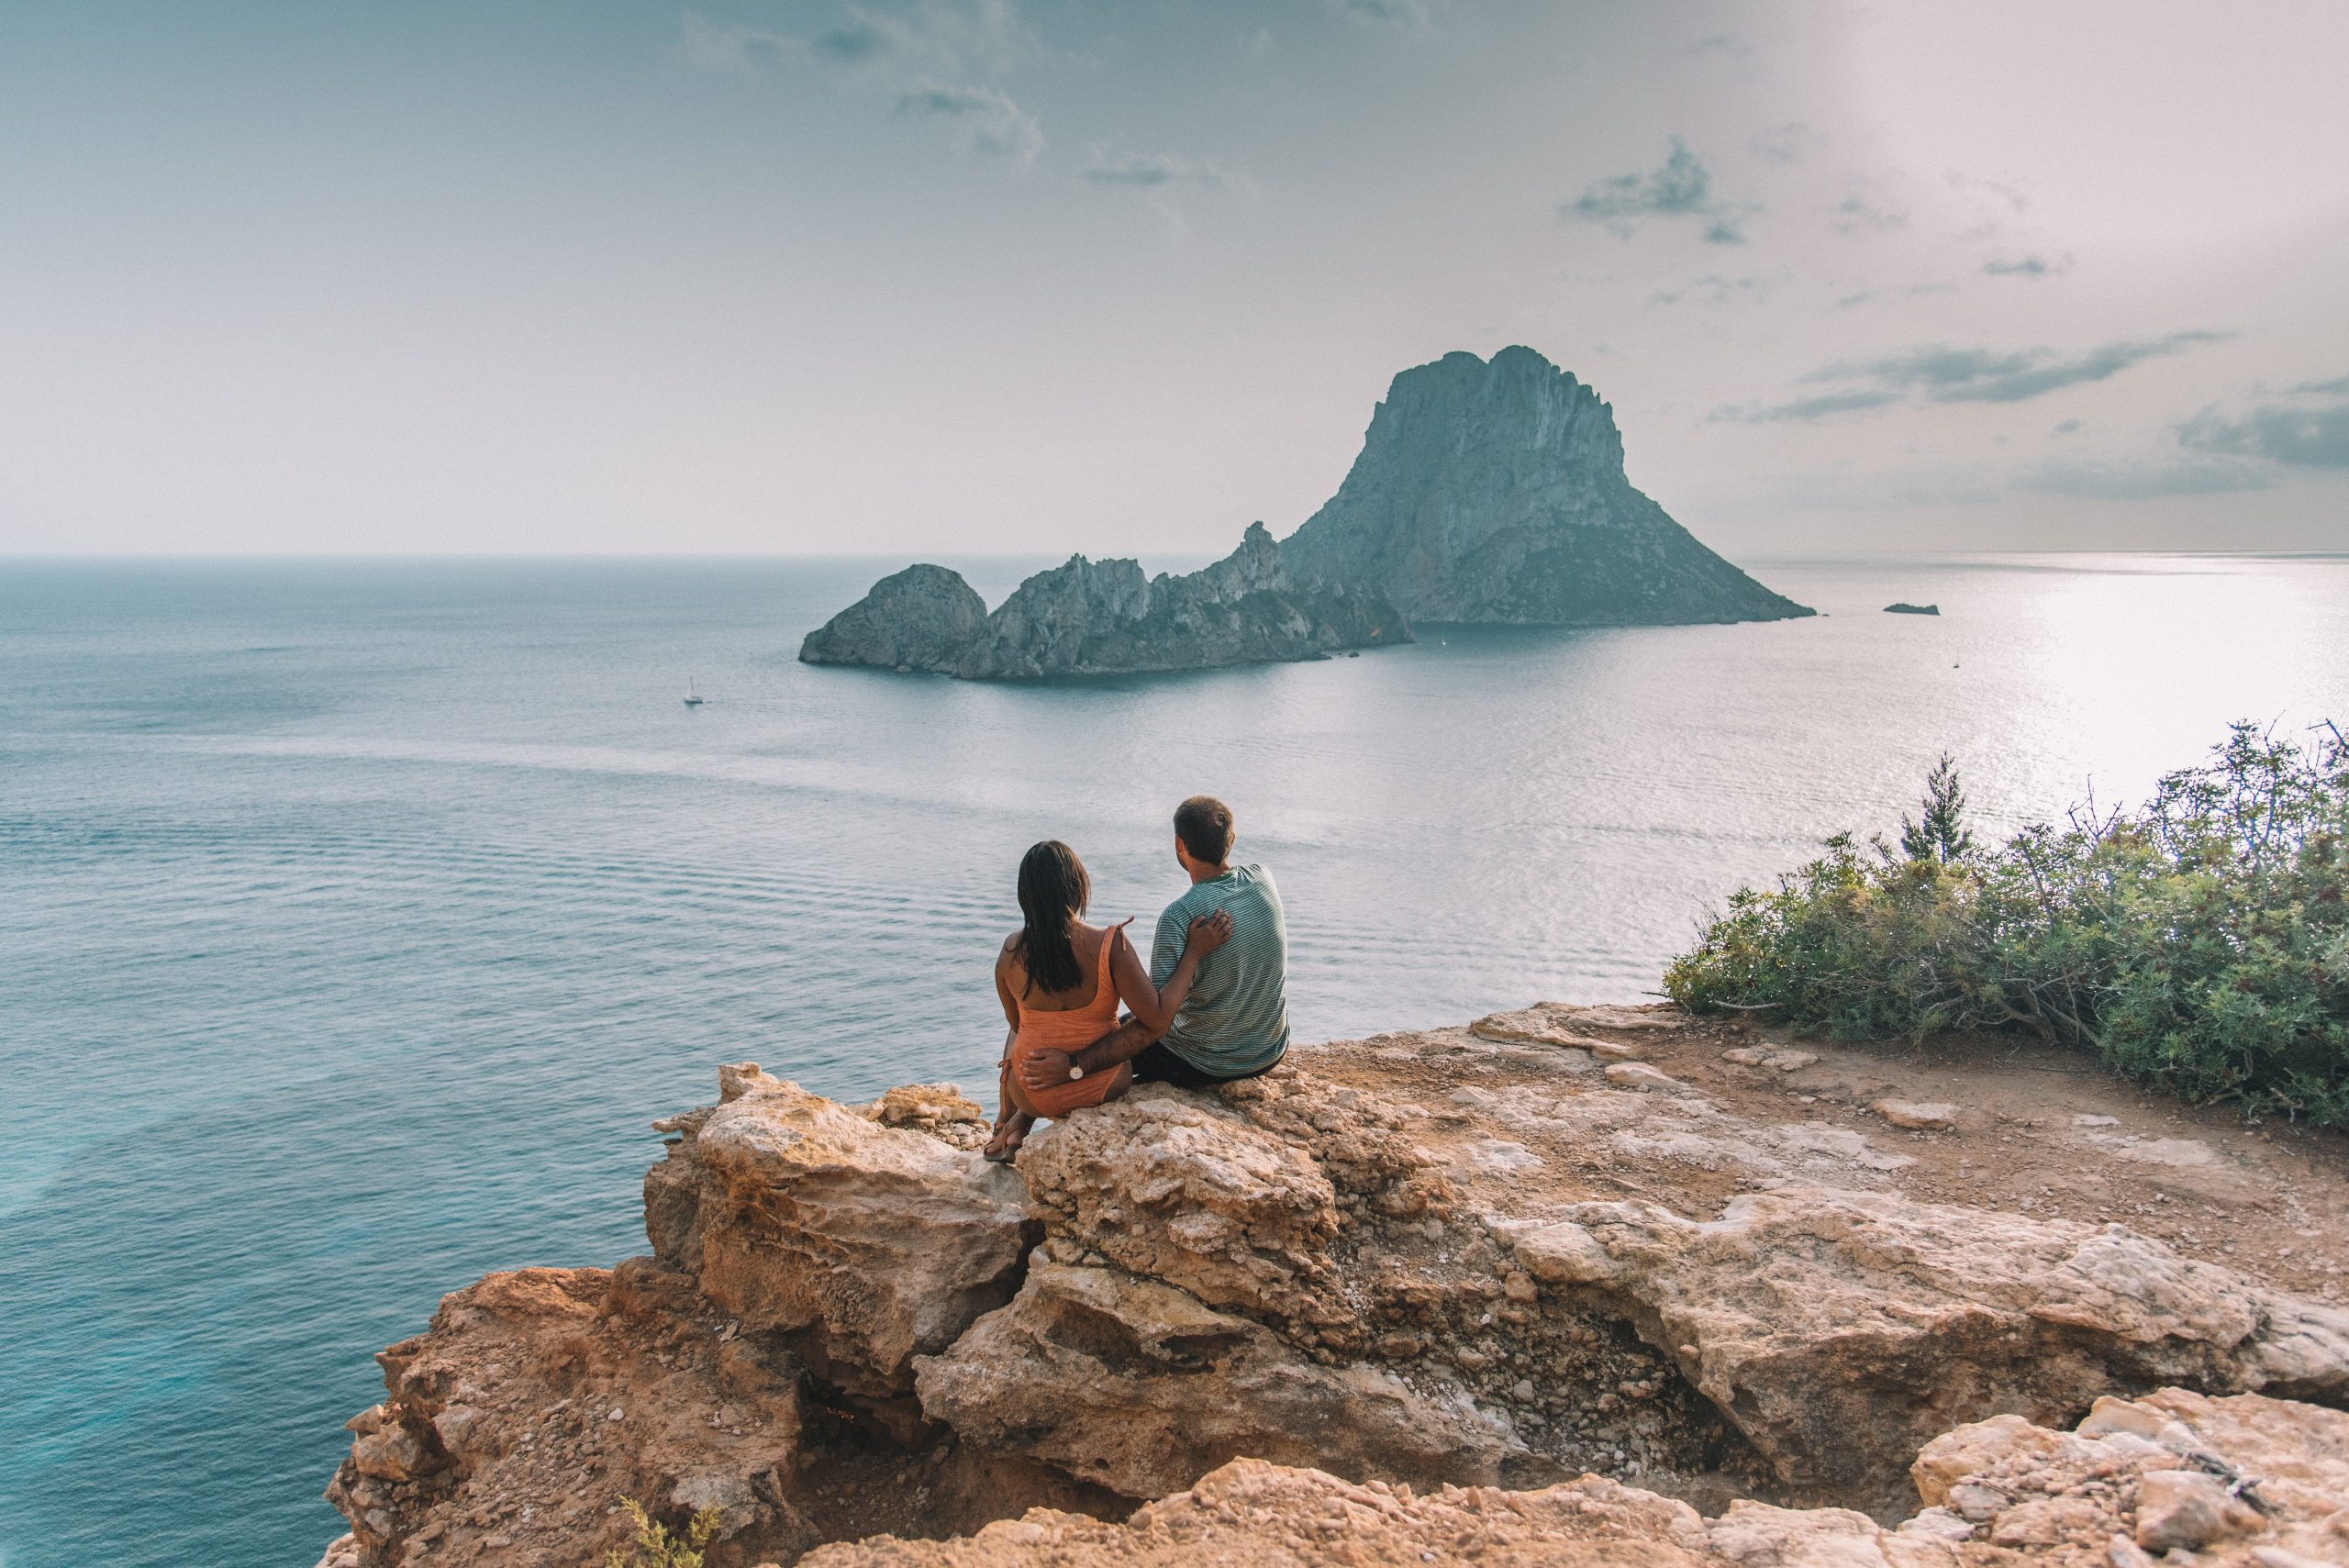 instagrammable places in ibiza, Ibiza instagram spots